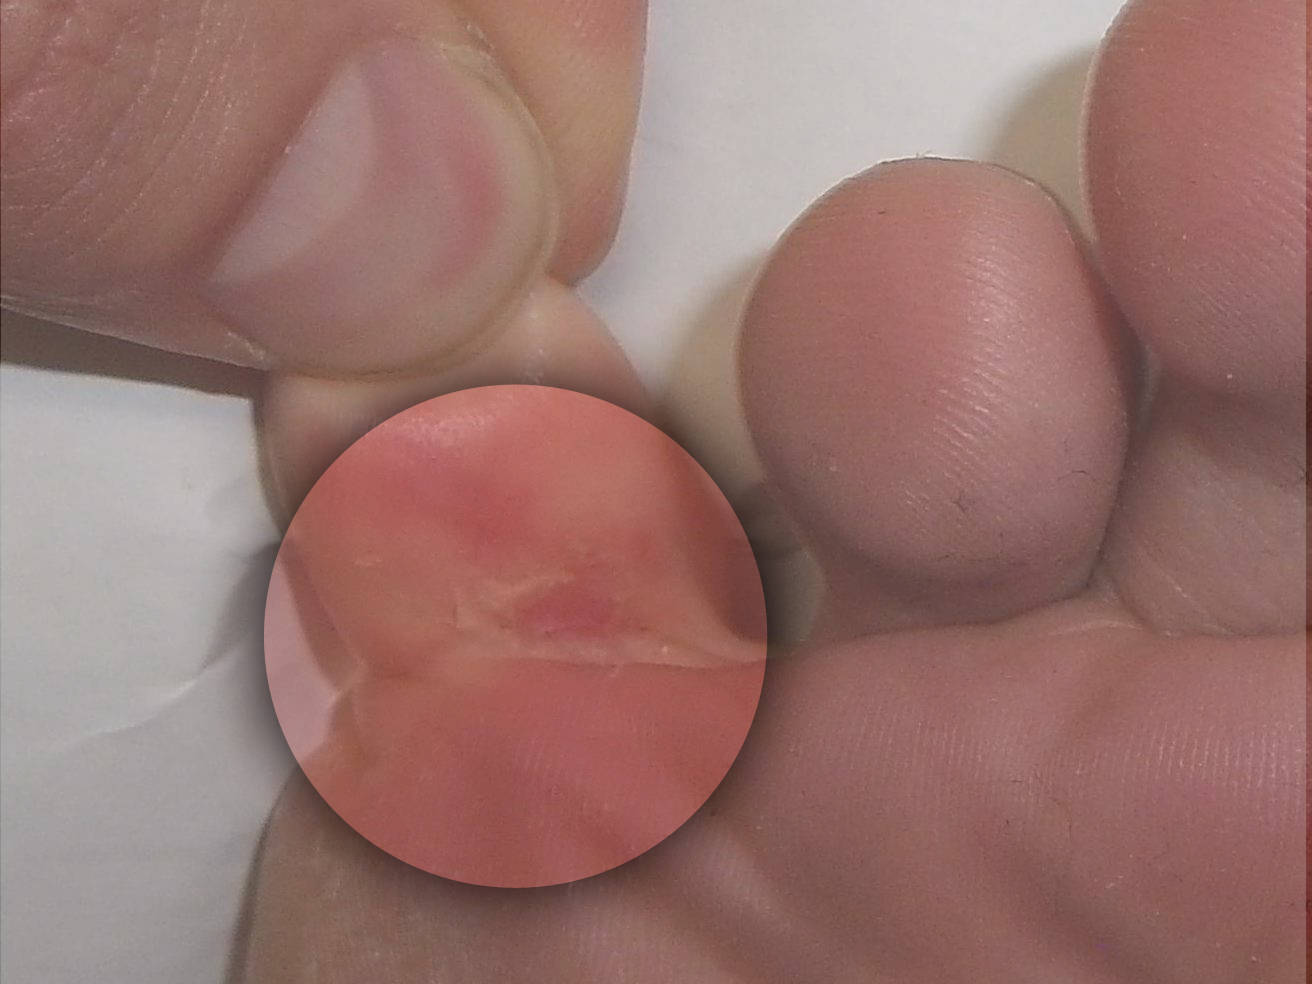 Treatment of fungal infection between toes